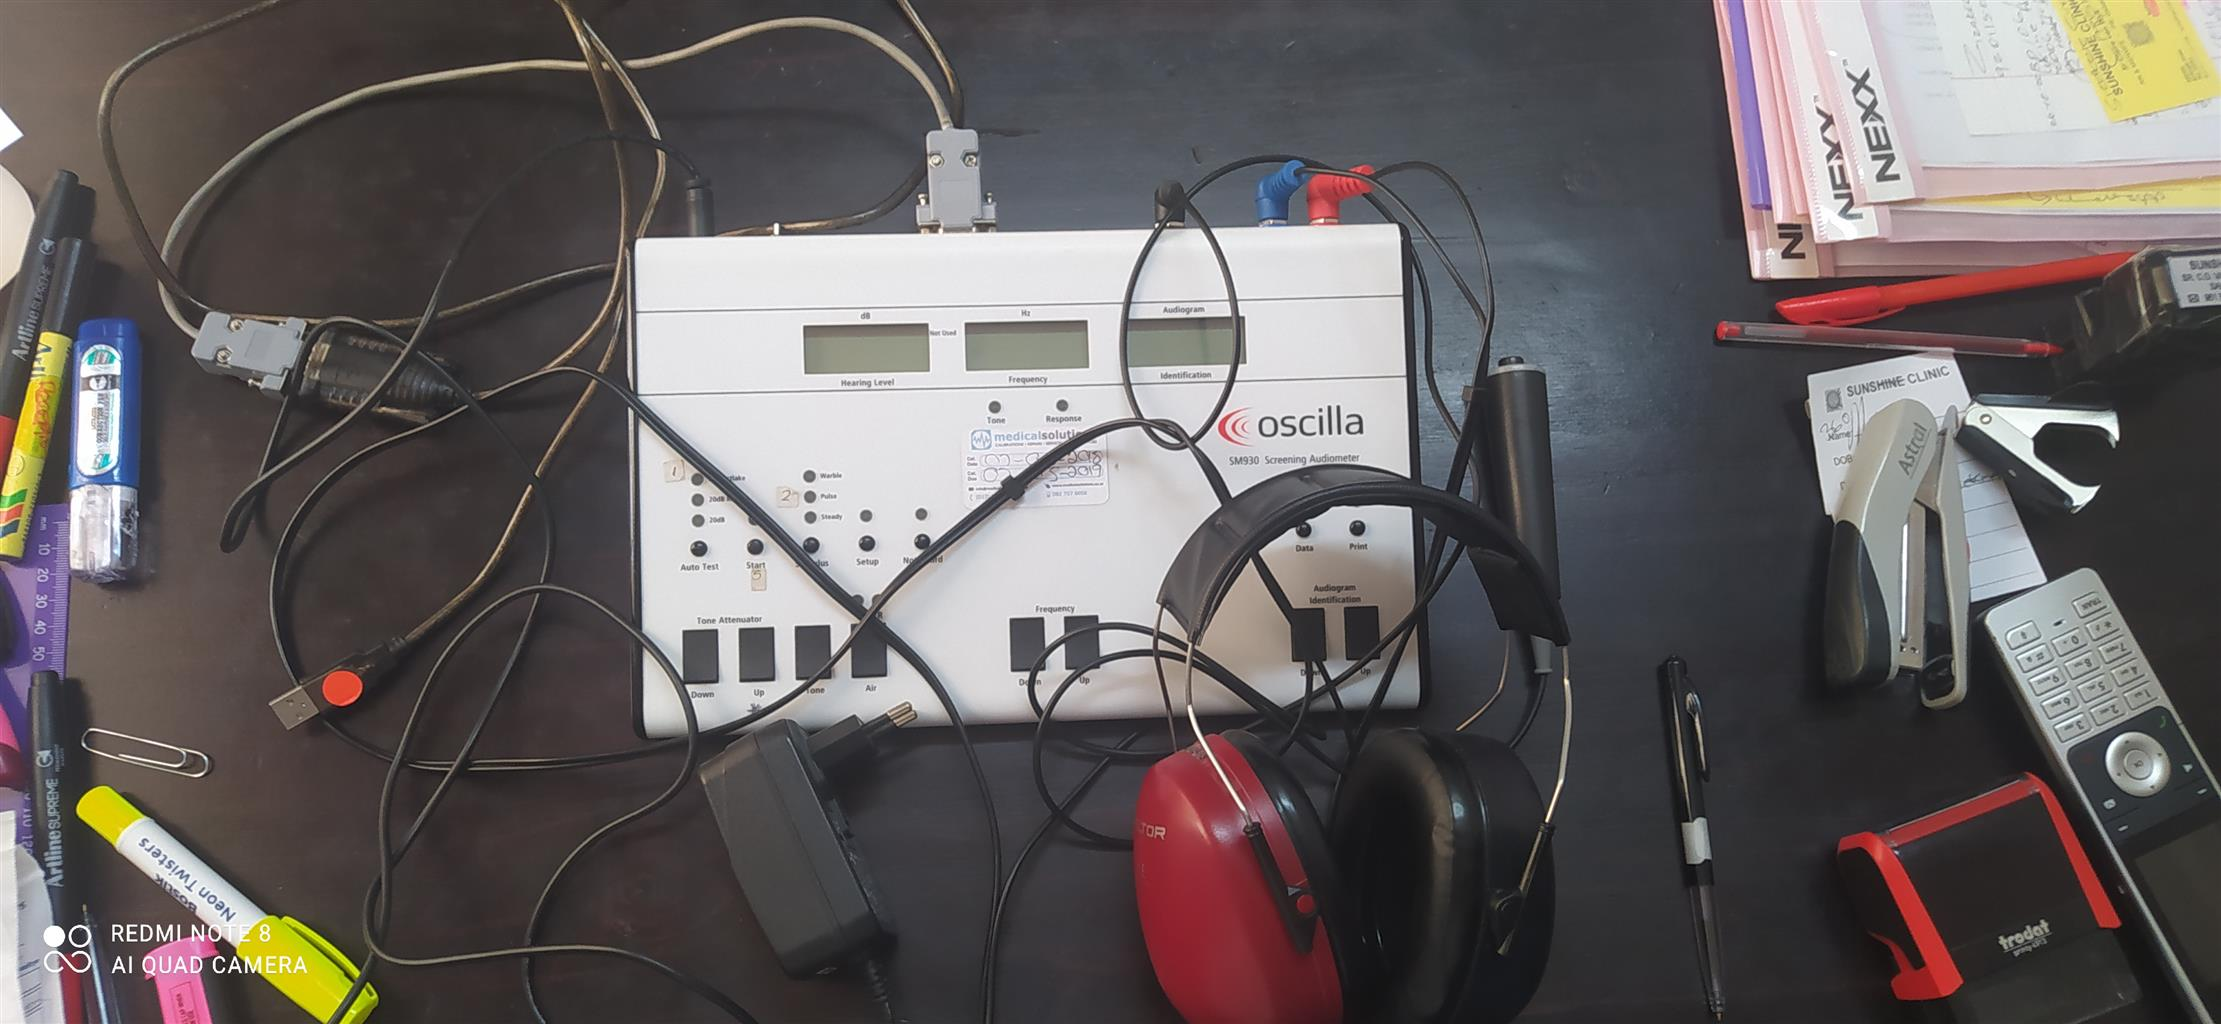 Audio booth and testing equipment